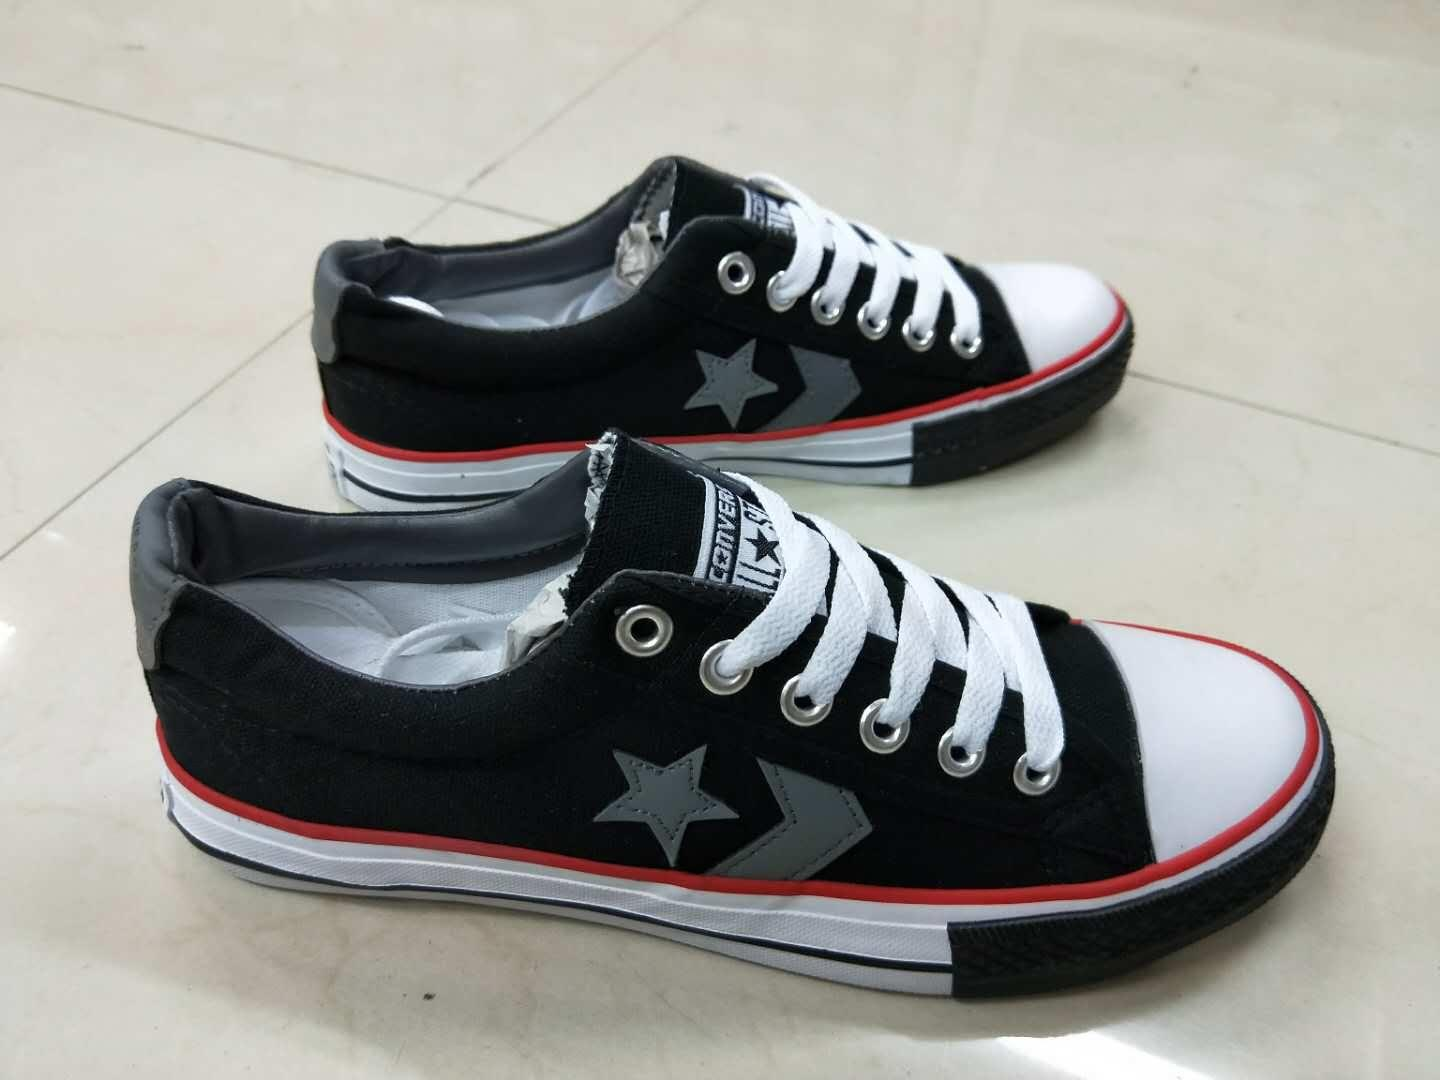 f6274cf9ed8f Converse Philippines  Converse price list - Shoes for Men   Women ...